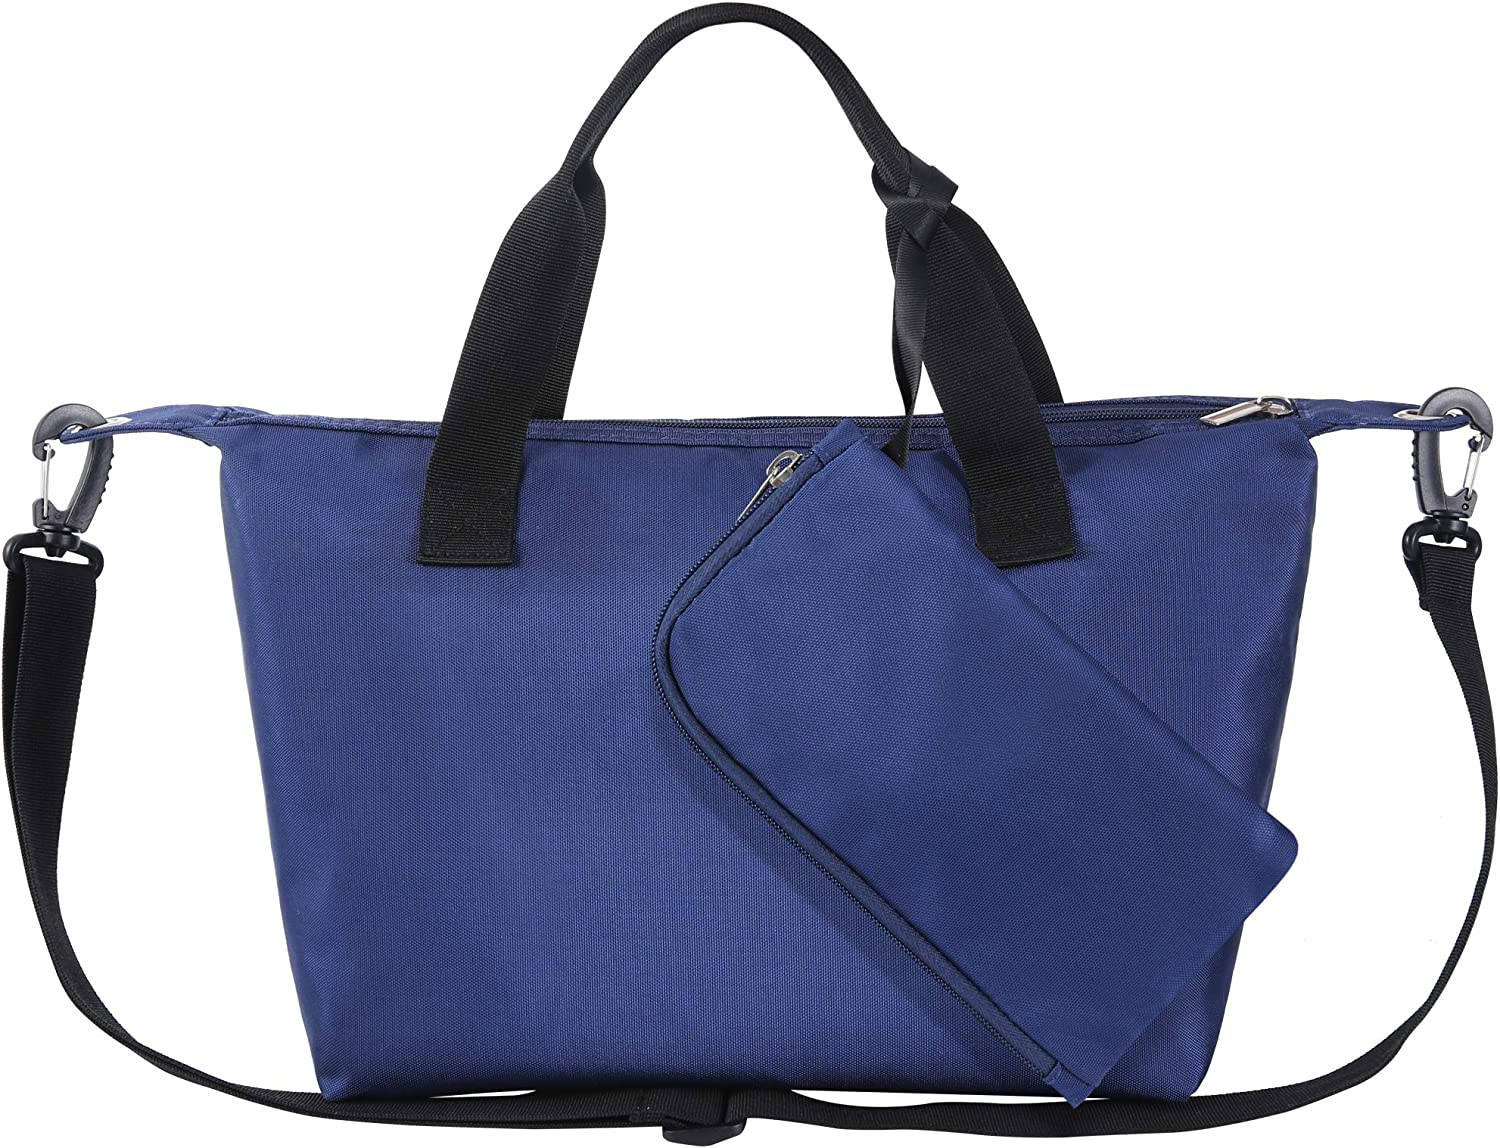 ORASANT Lunch Bag Lunch Tote, Waterproof and Leakproof Insulated Lunch Box for Women with Side Pockets and Detachable Shoulder Strap, Navy Blue